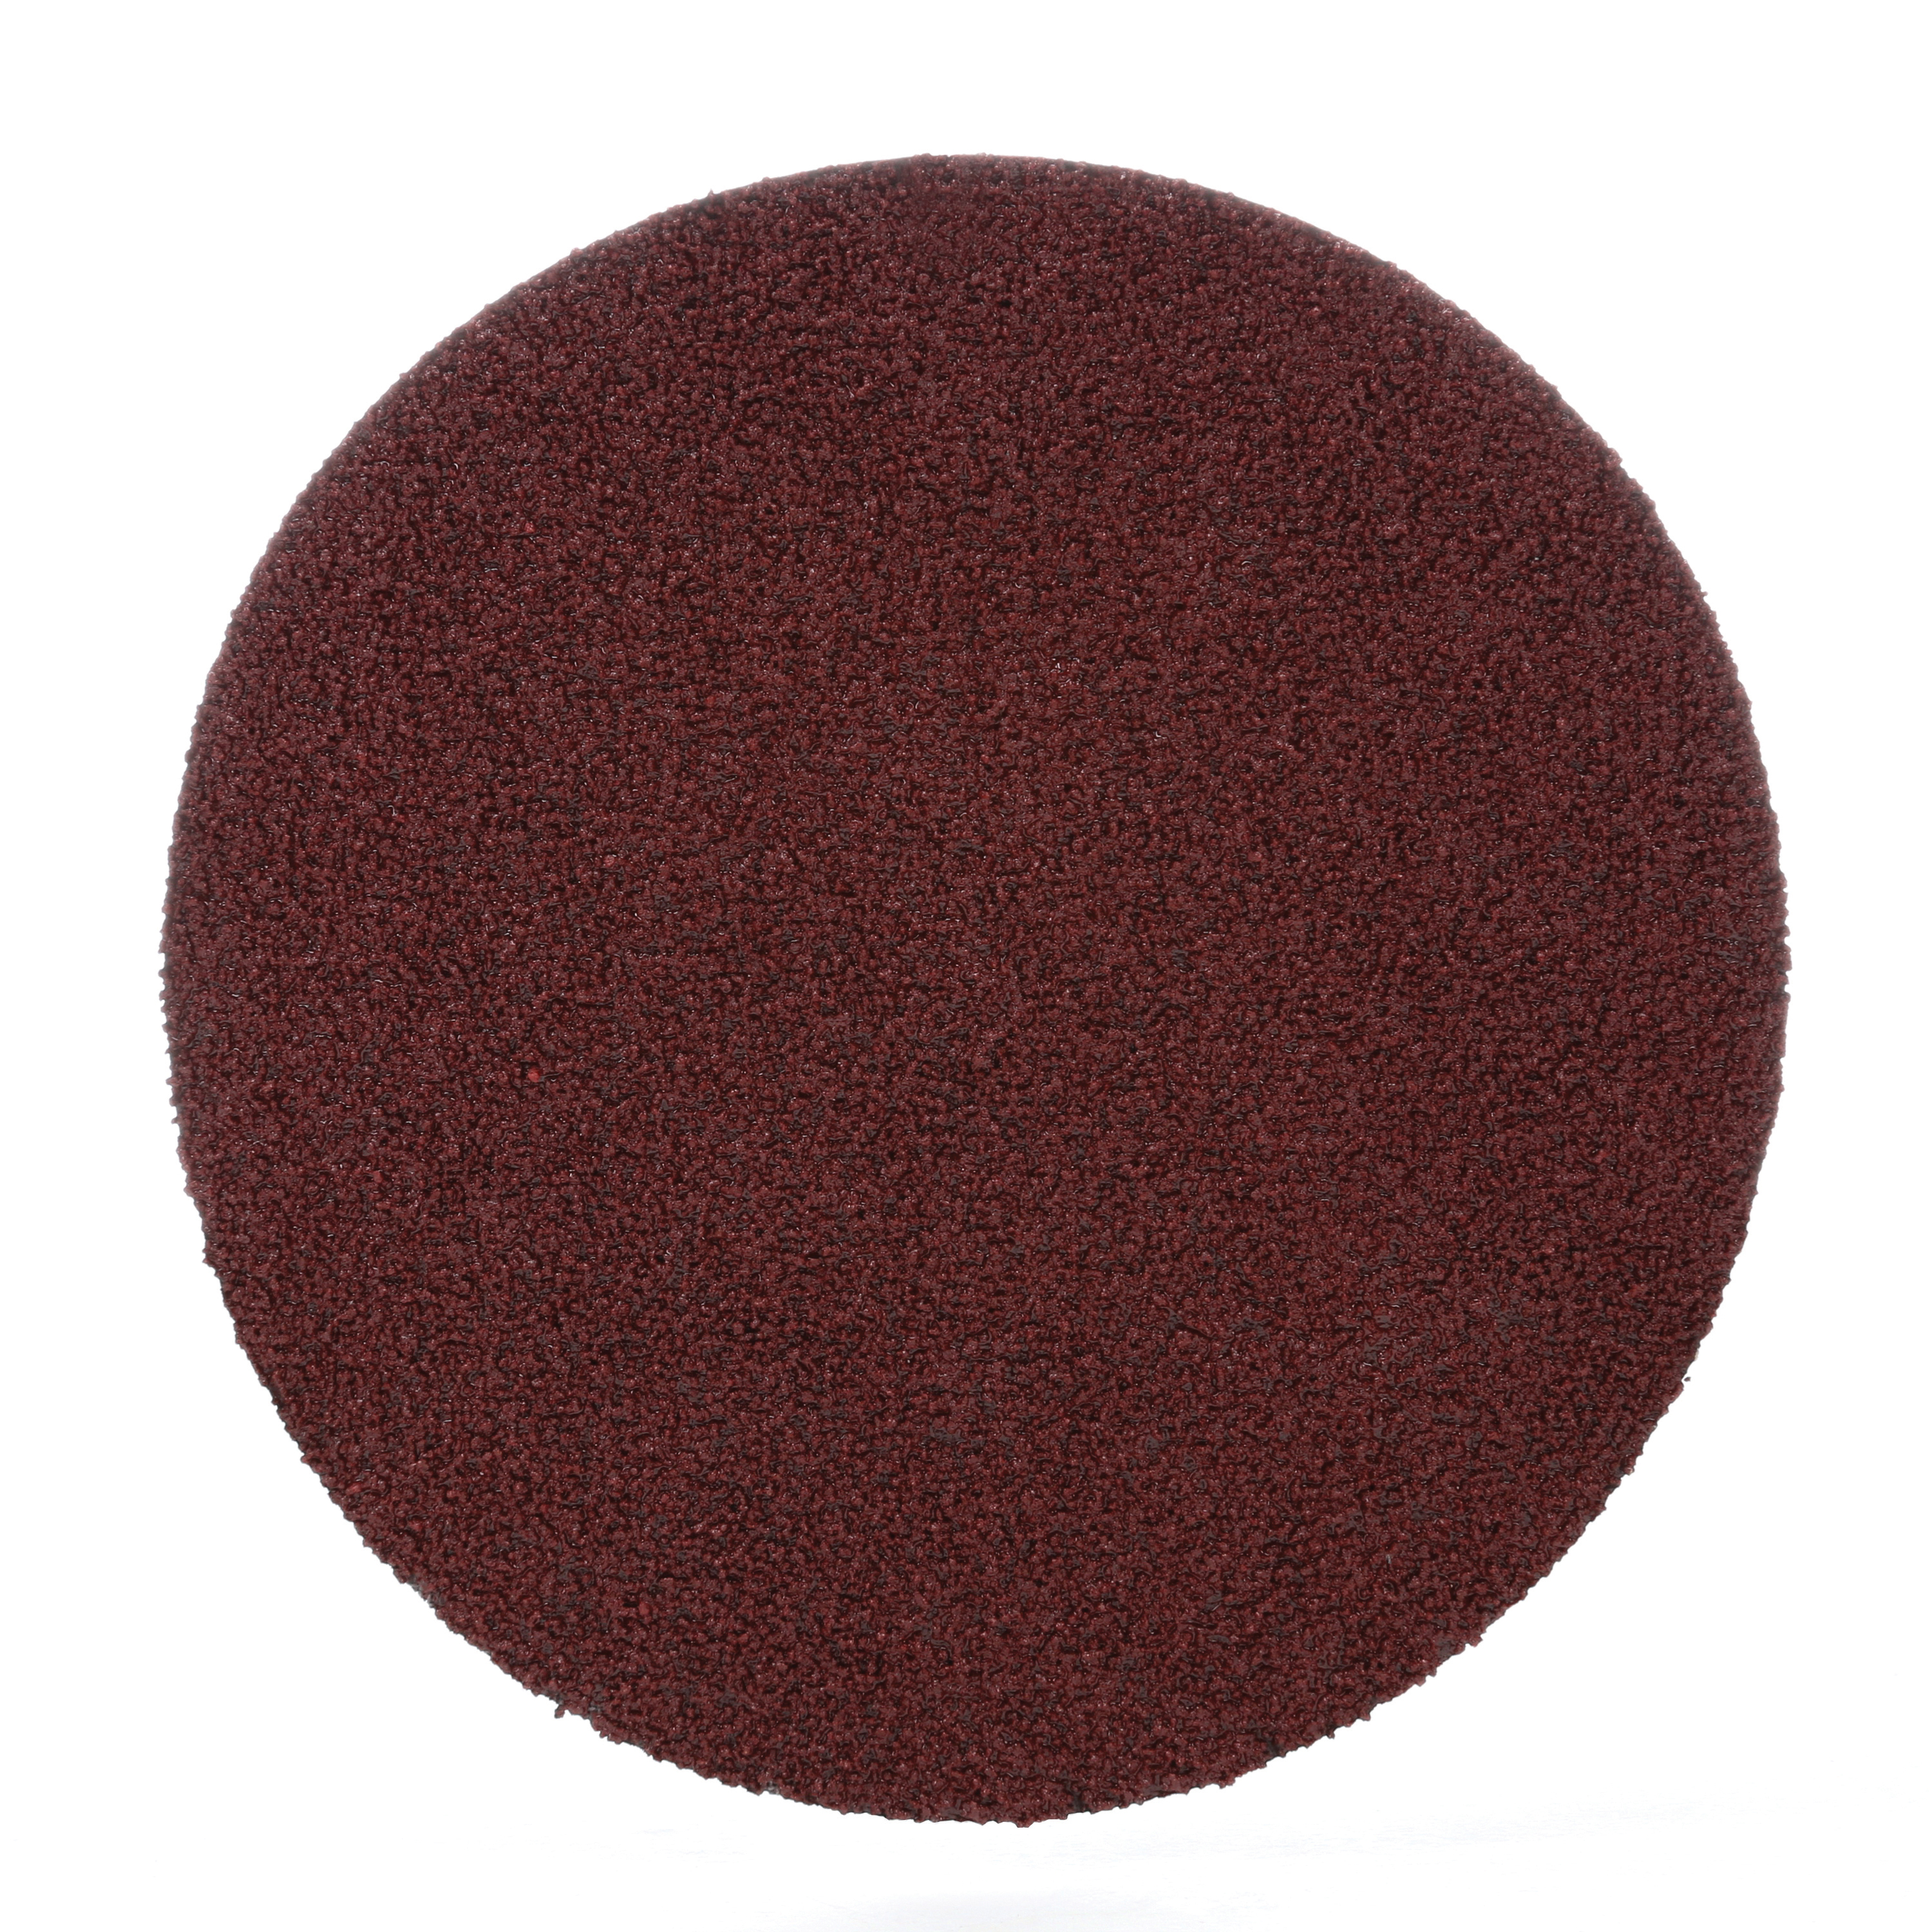 3M™ Hookit™ 051144-13790 359F Coated Abrasive Disc, 5 in Dia Disc, P180 Grit, Very Fine Grade, Aluminum Oxide Abrasive, Polyester Backing